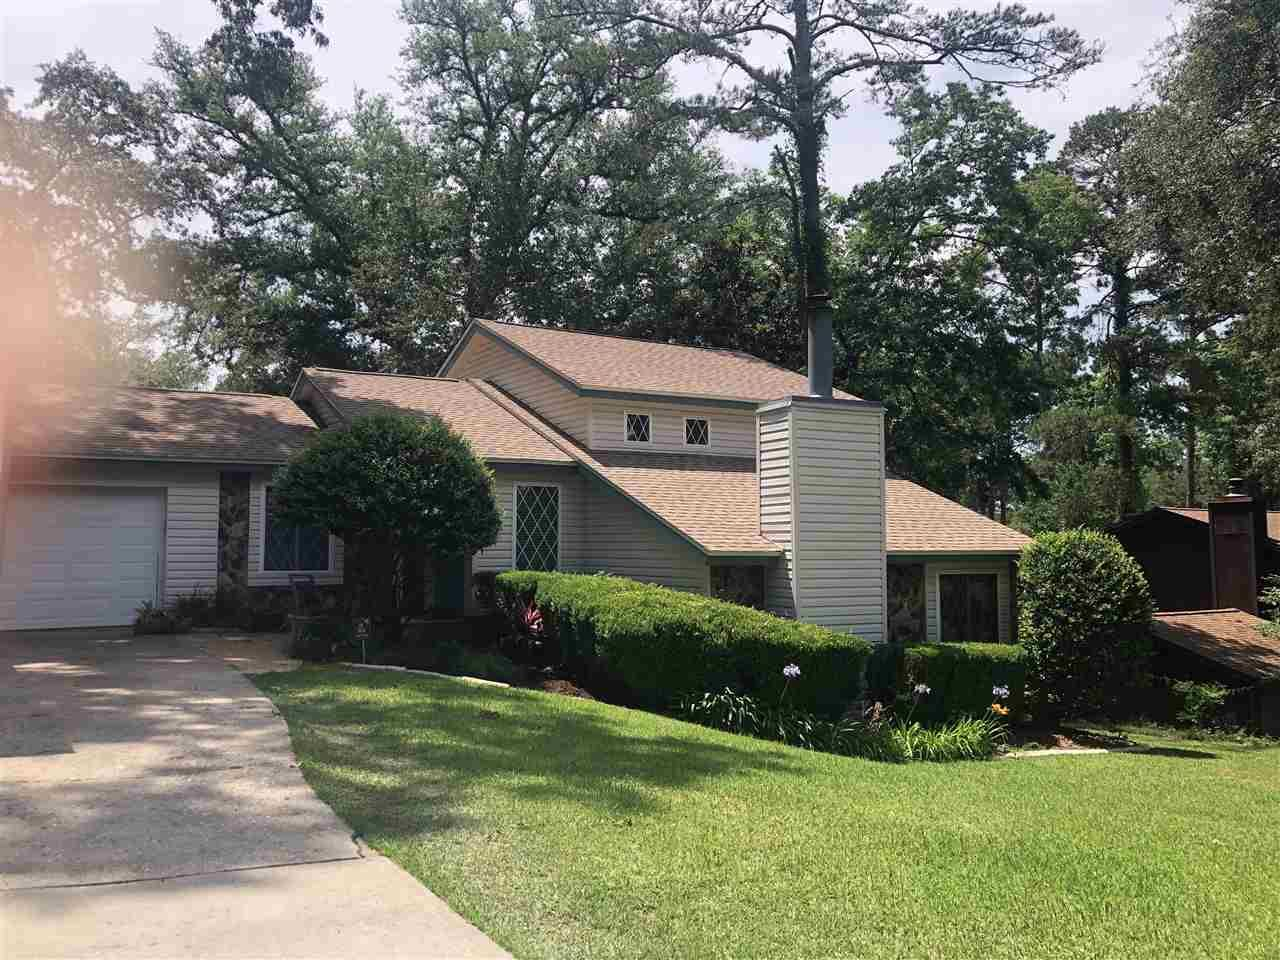 Photo of 2032 Ted Hines Drive, TALLAHASSEE, FL 32308 (MLS # 319410)